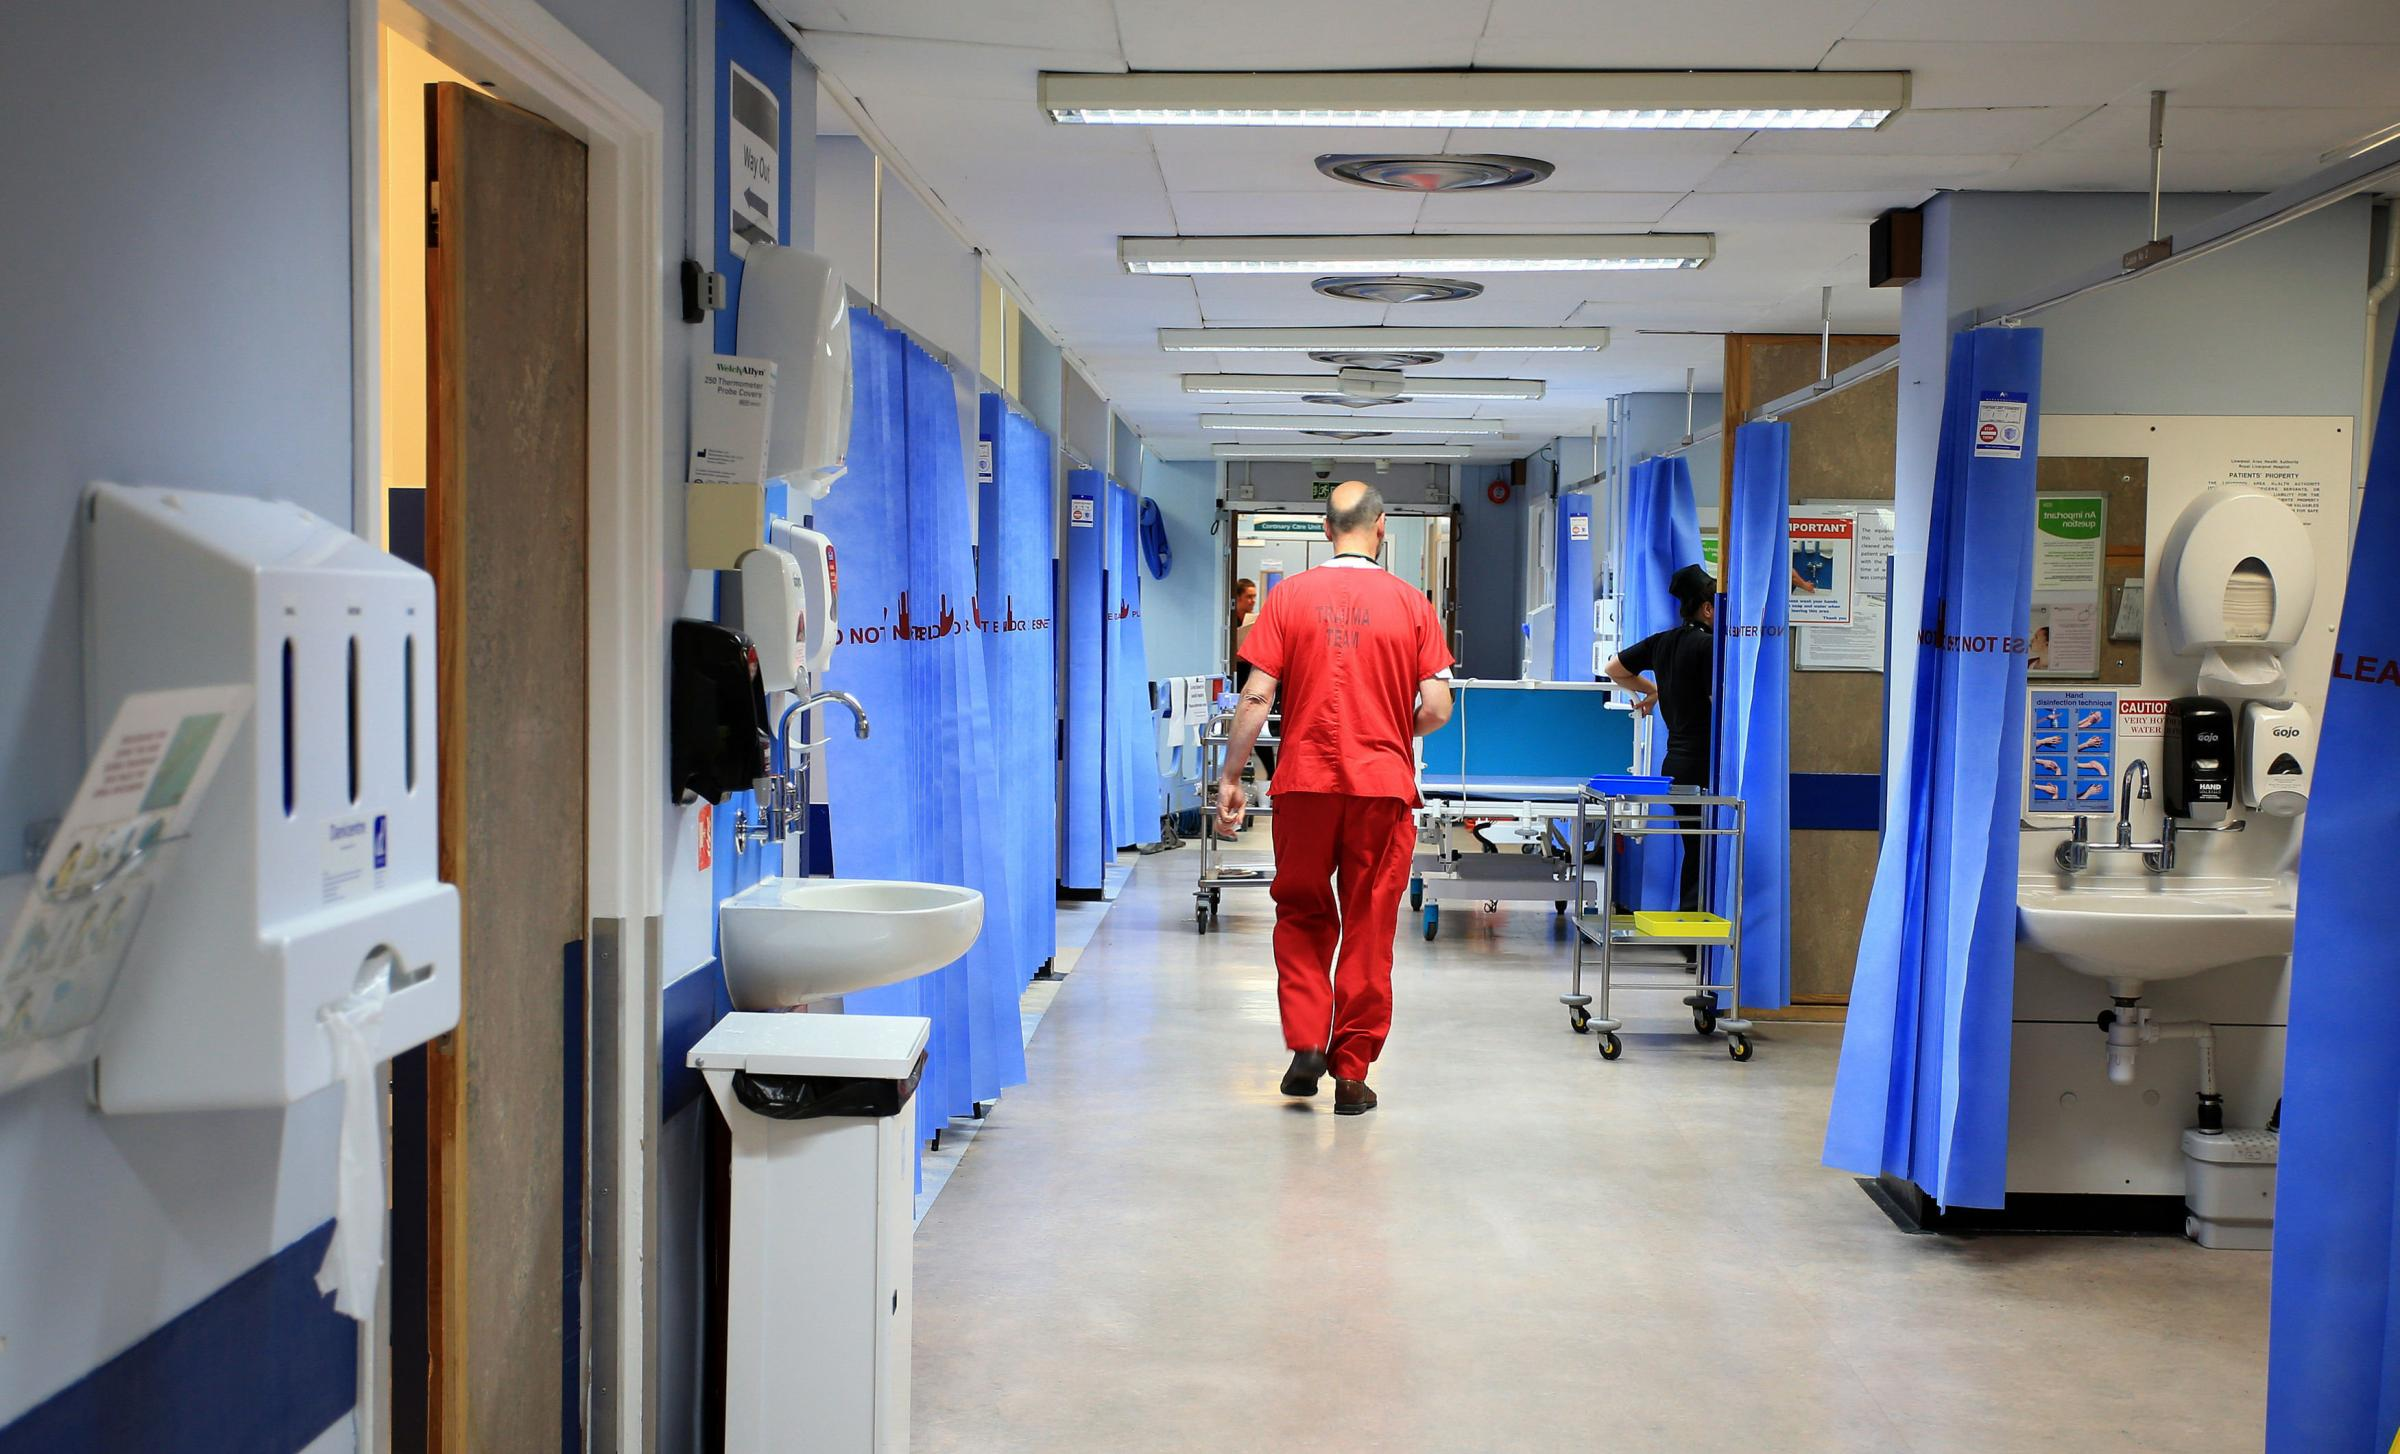 Bed blocking, where a patient is well enough to be discharged but unable to leave because the next stage of their care has not been organised, has contributed significantly to A&E delays in recent years.